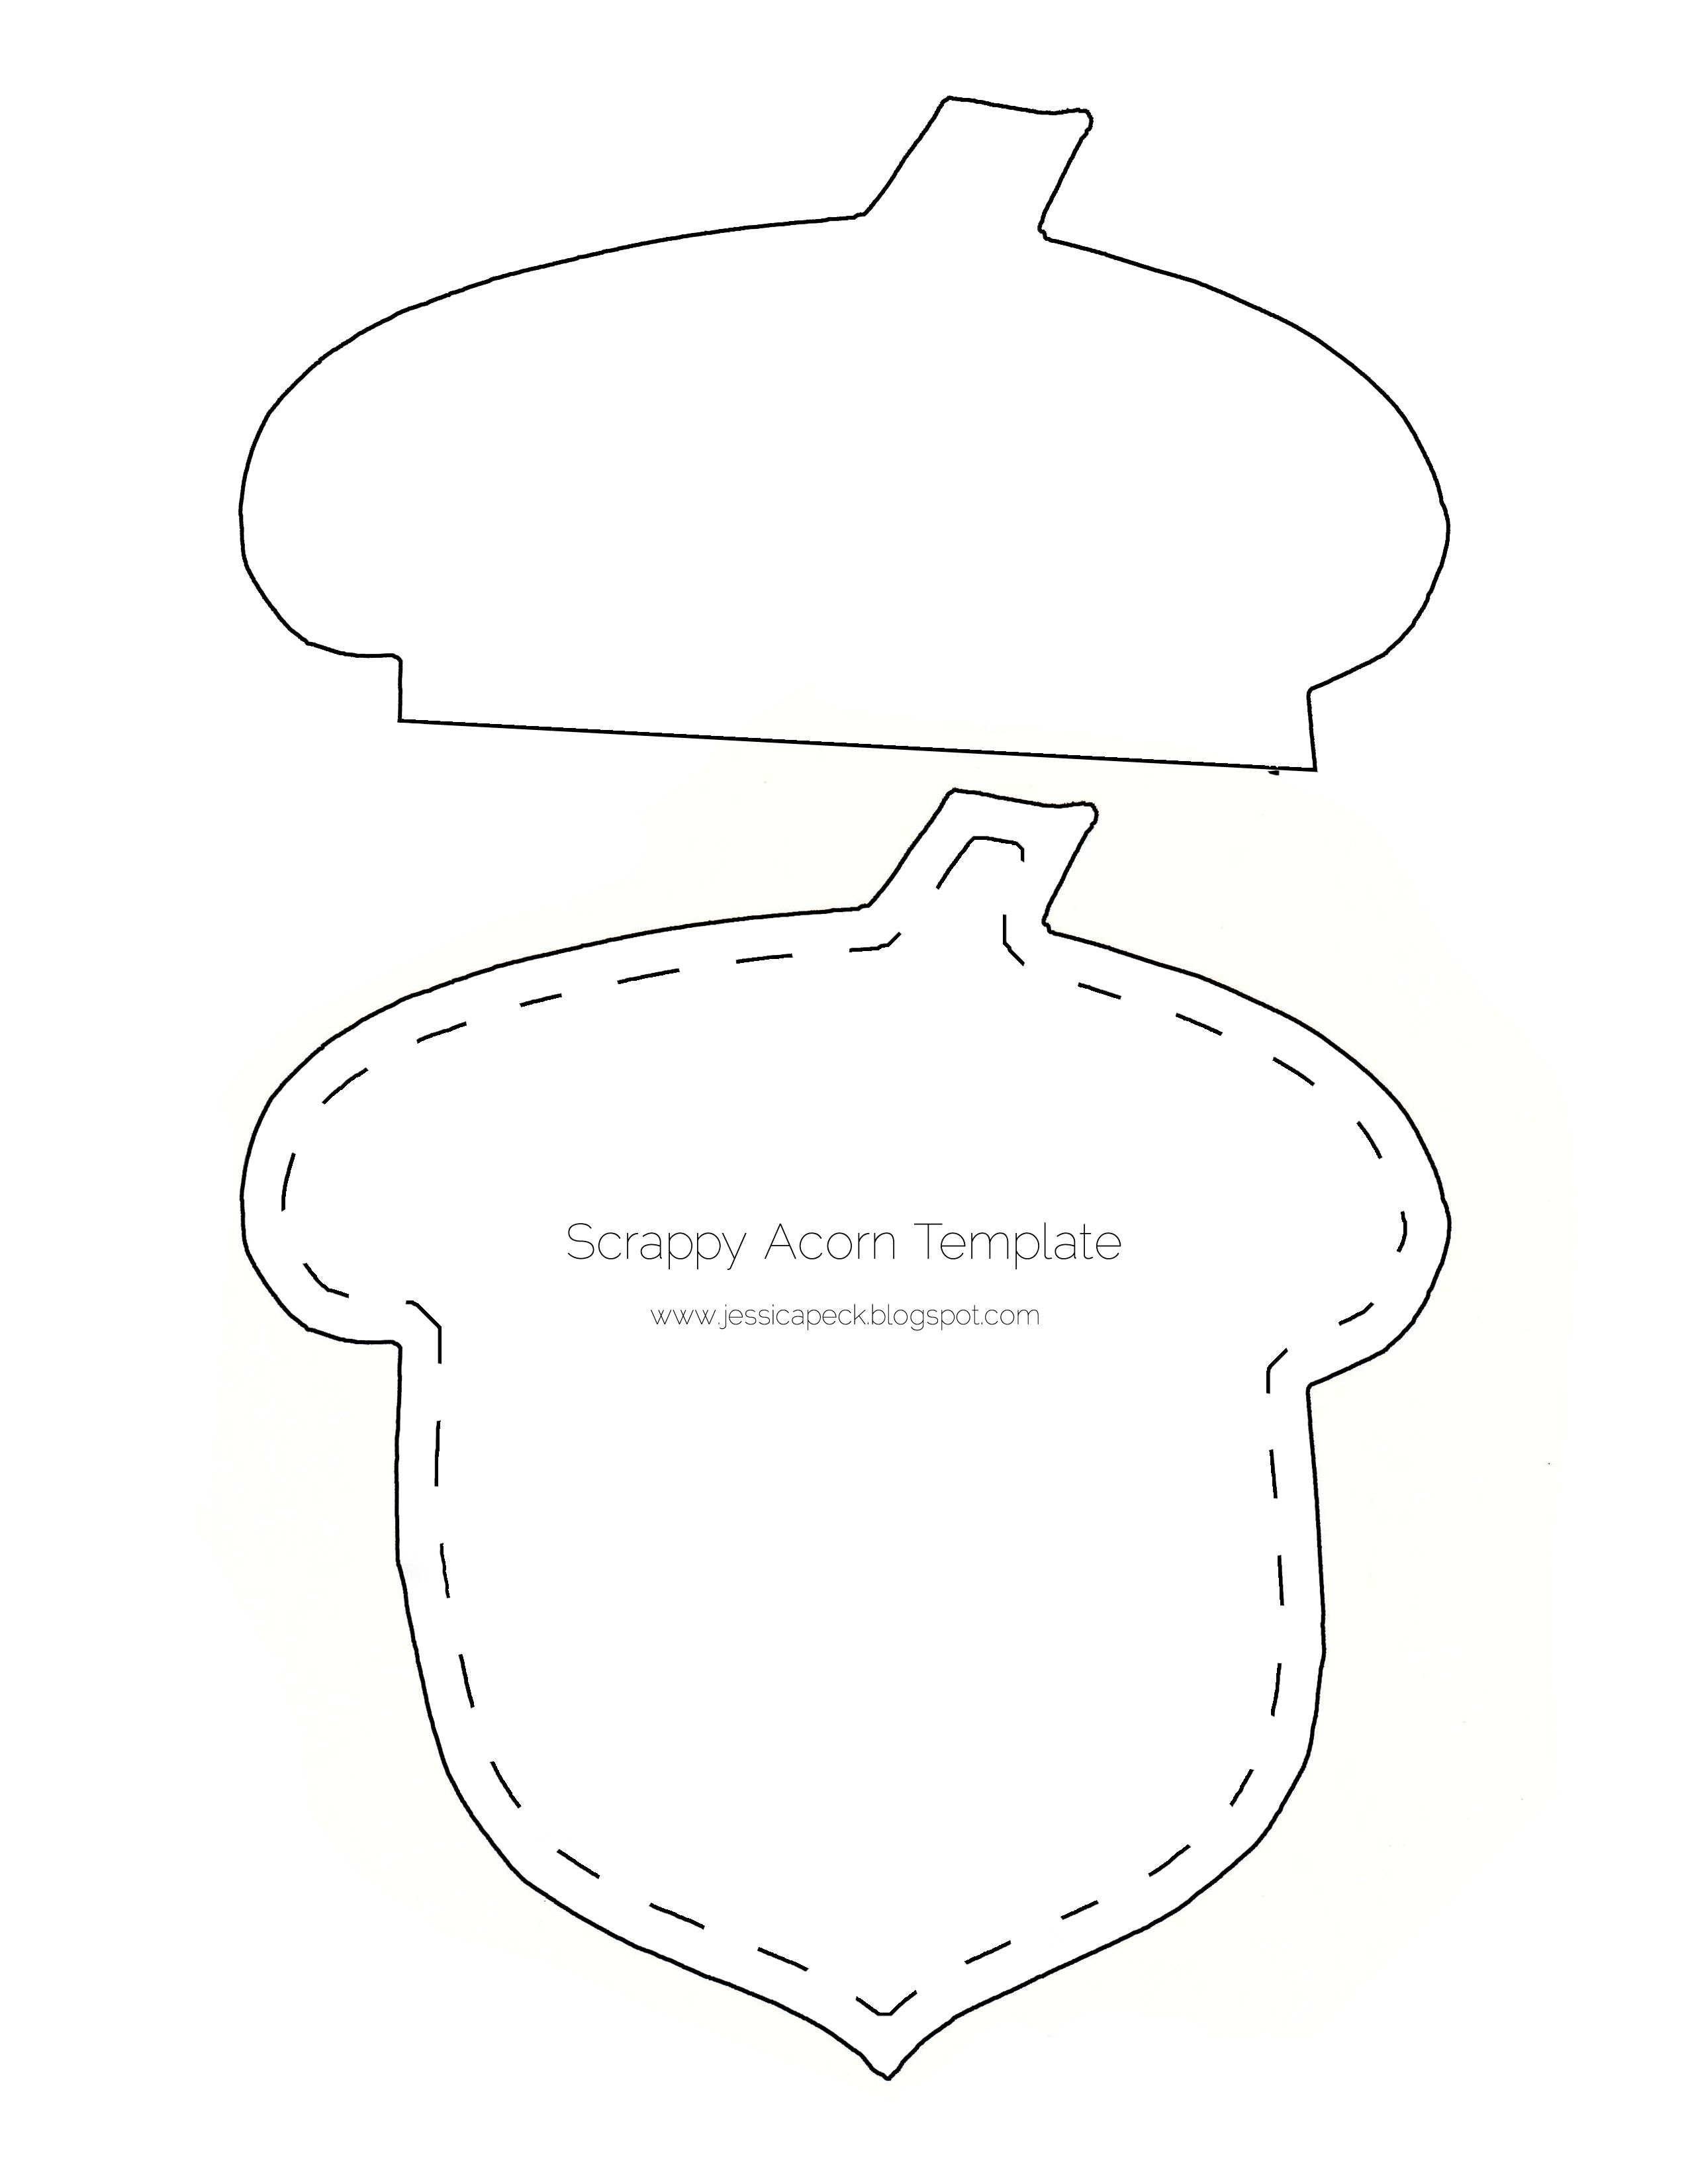 acorn template cameo svg pinterest felting craft and patterns